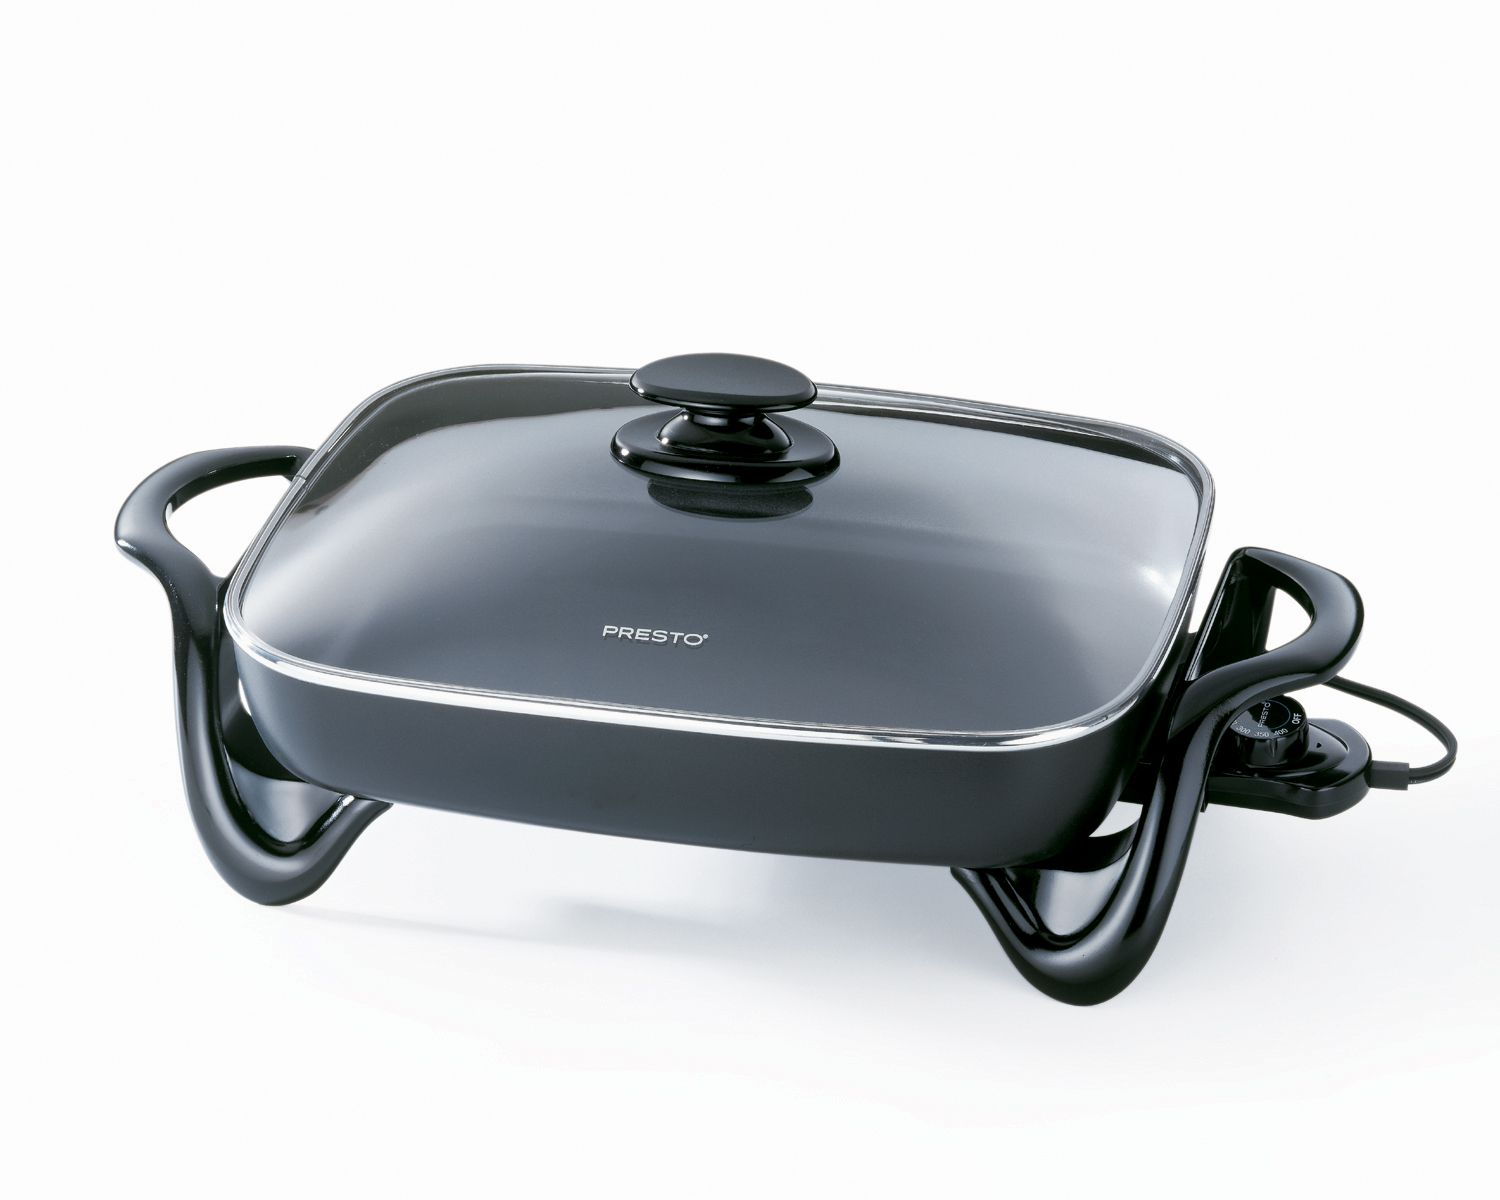 Presto 16 Electric Skillet with Glass Lid